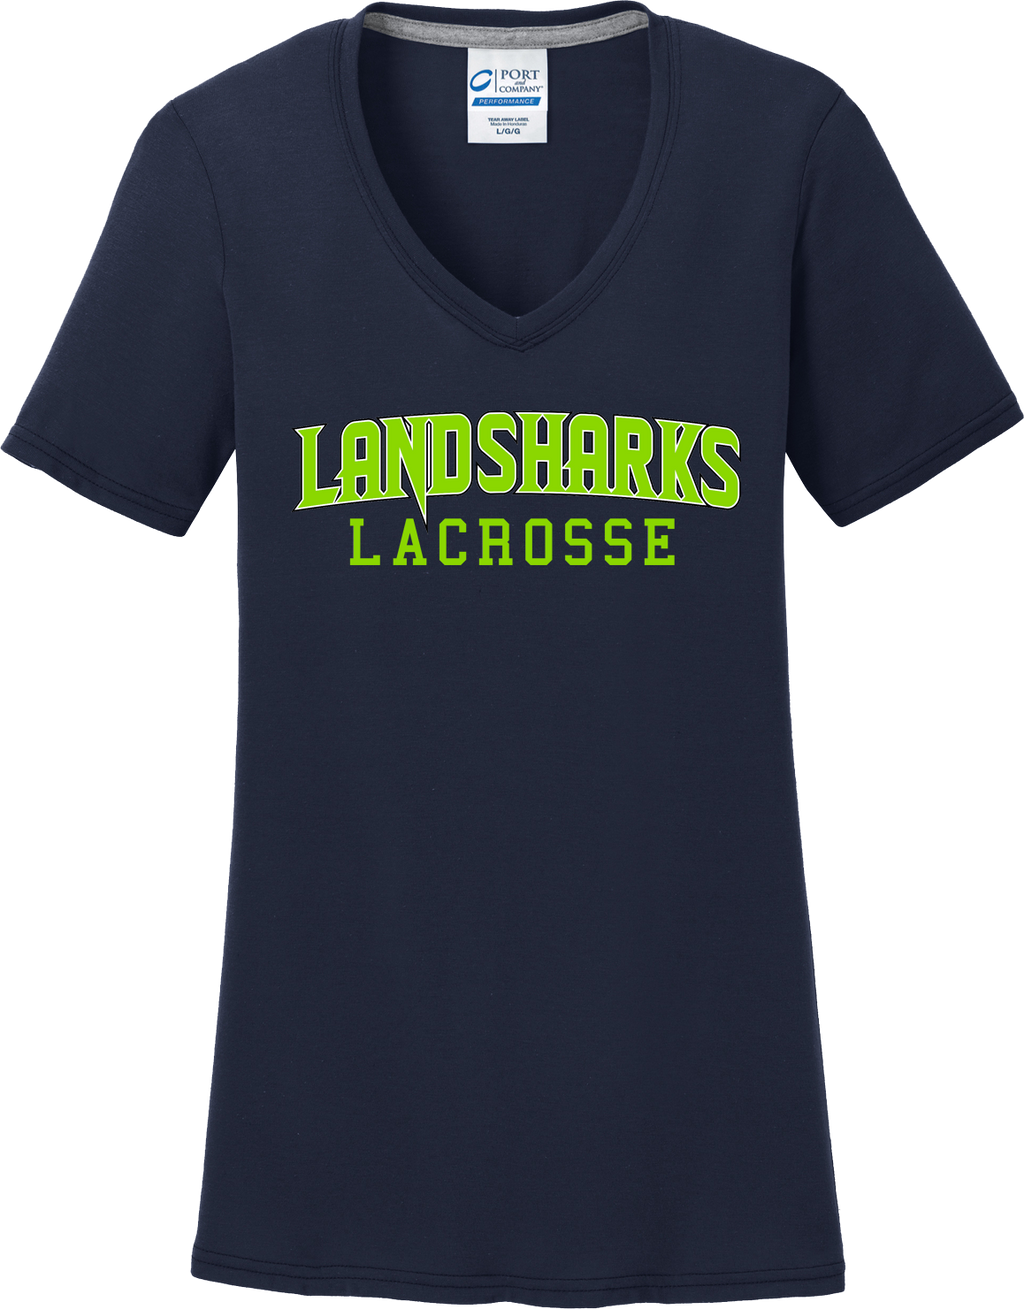 Bay Area Landsharks Women's Navy T-Shirt Text Logo